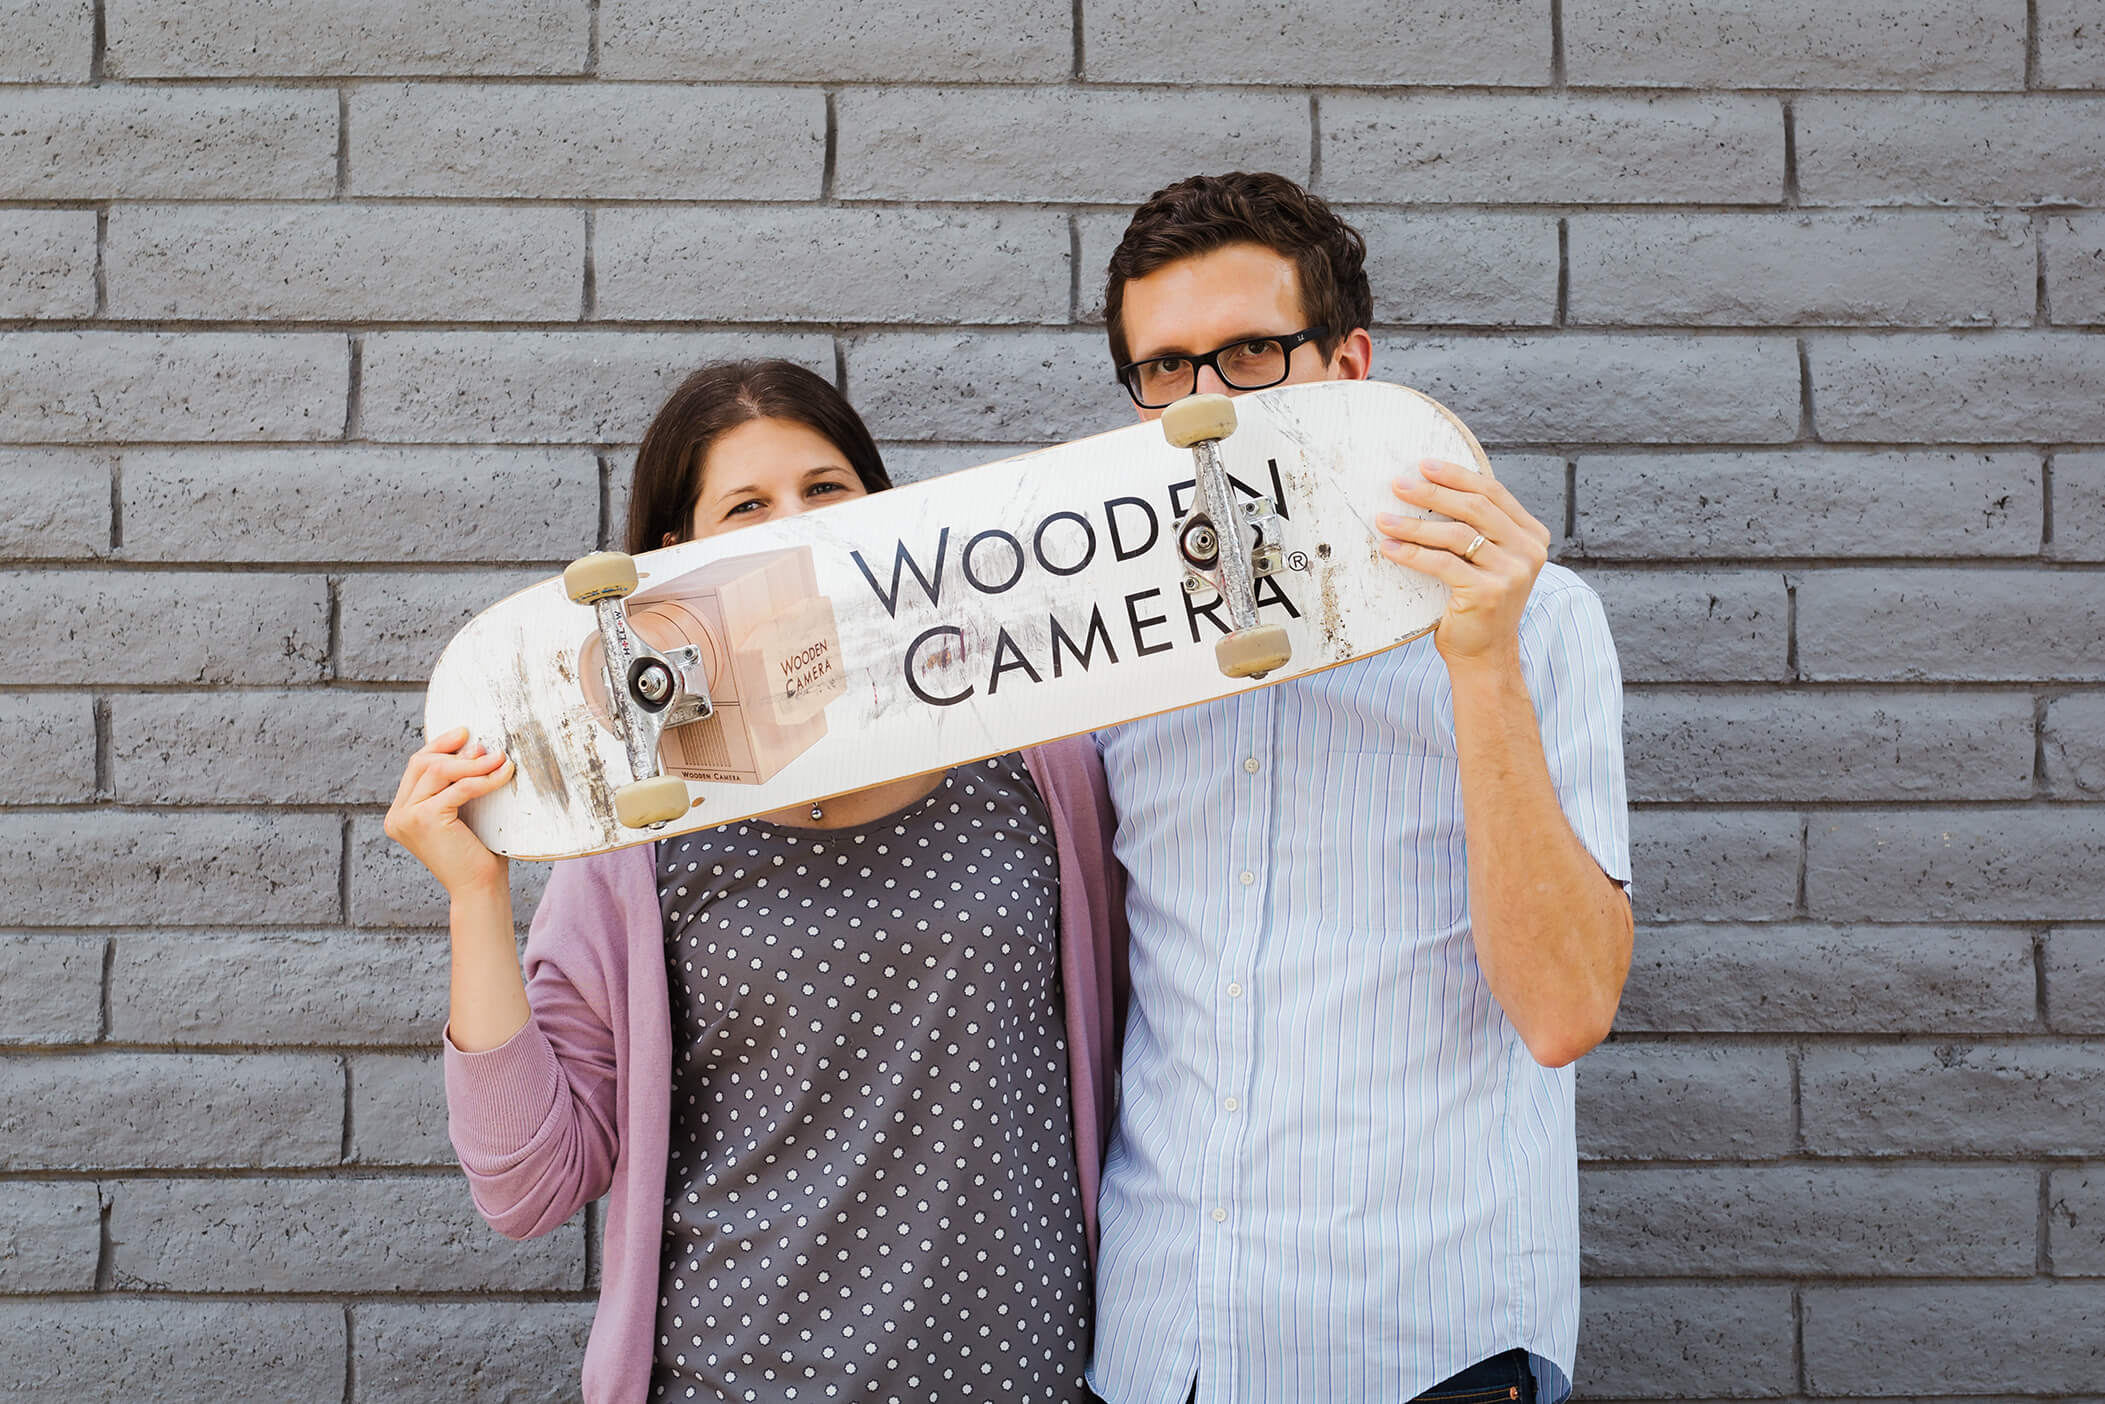 Wooden Camera: How One Business Went from a Small Start to Star Wars